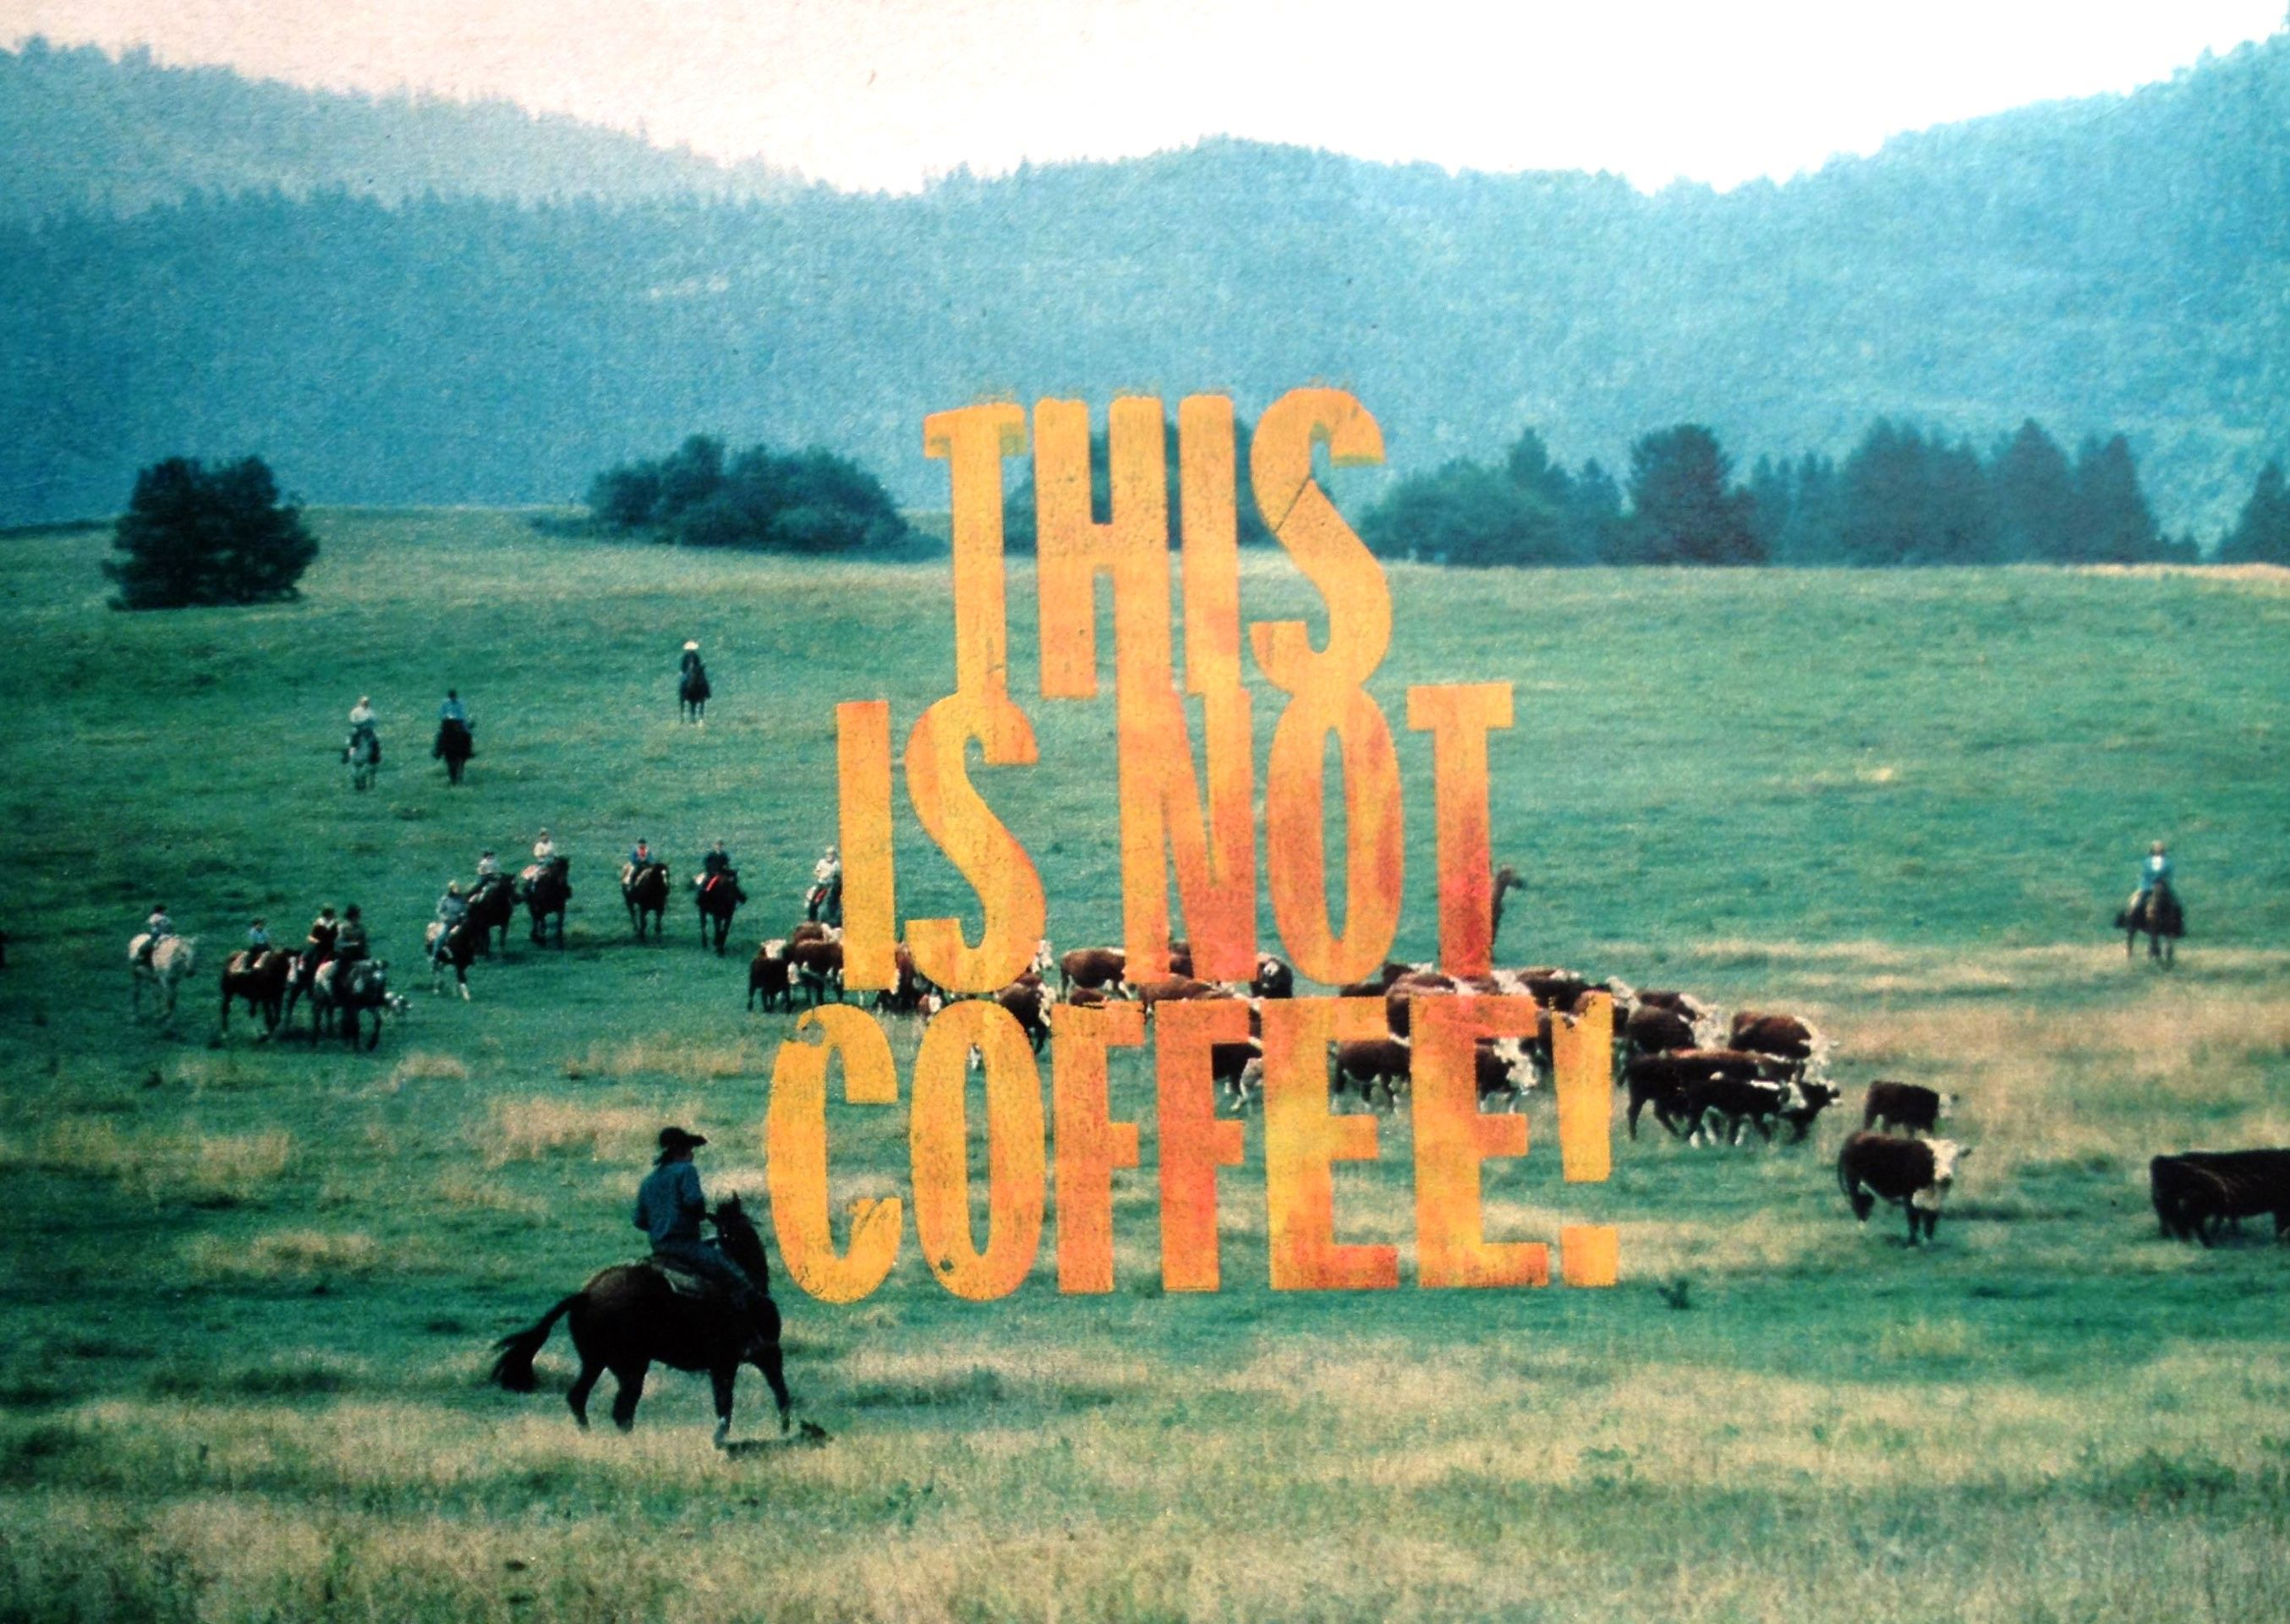 This is not coffee